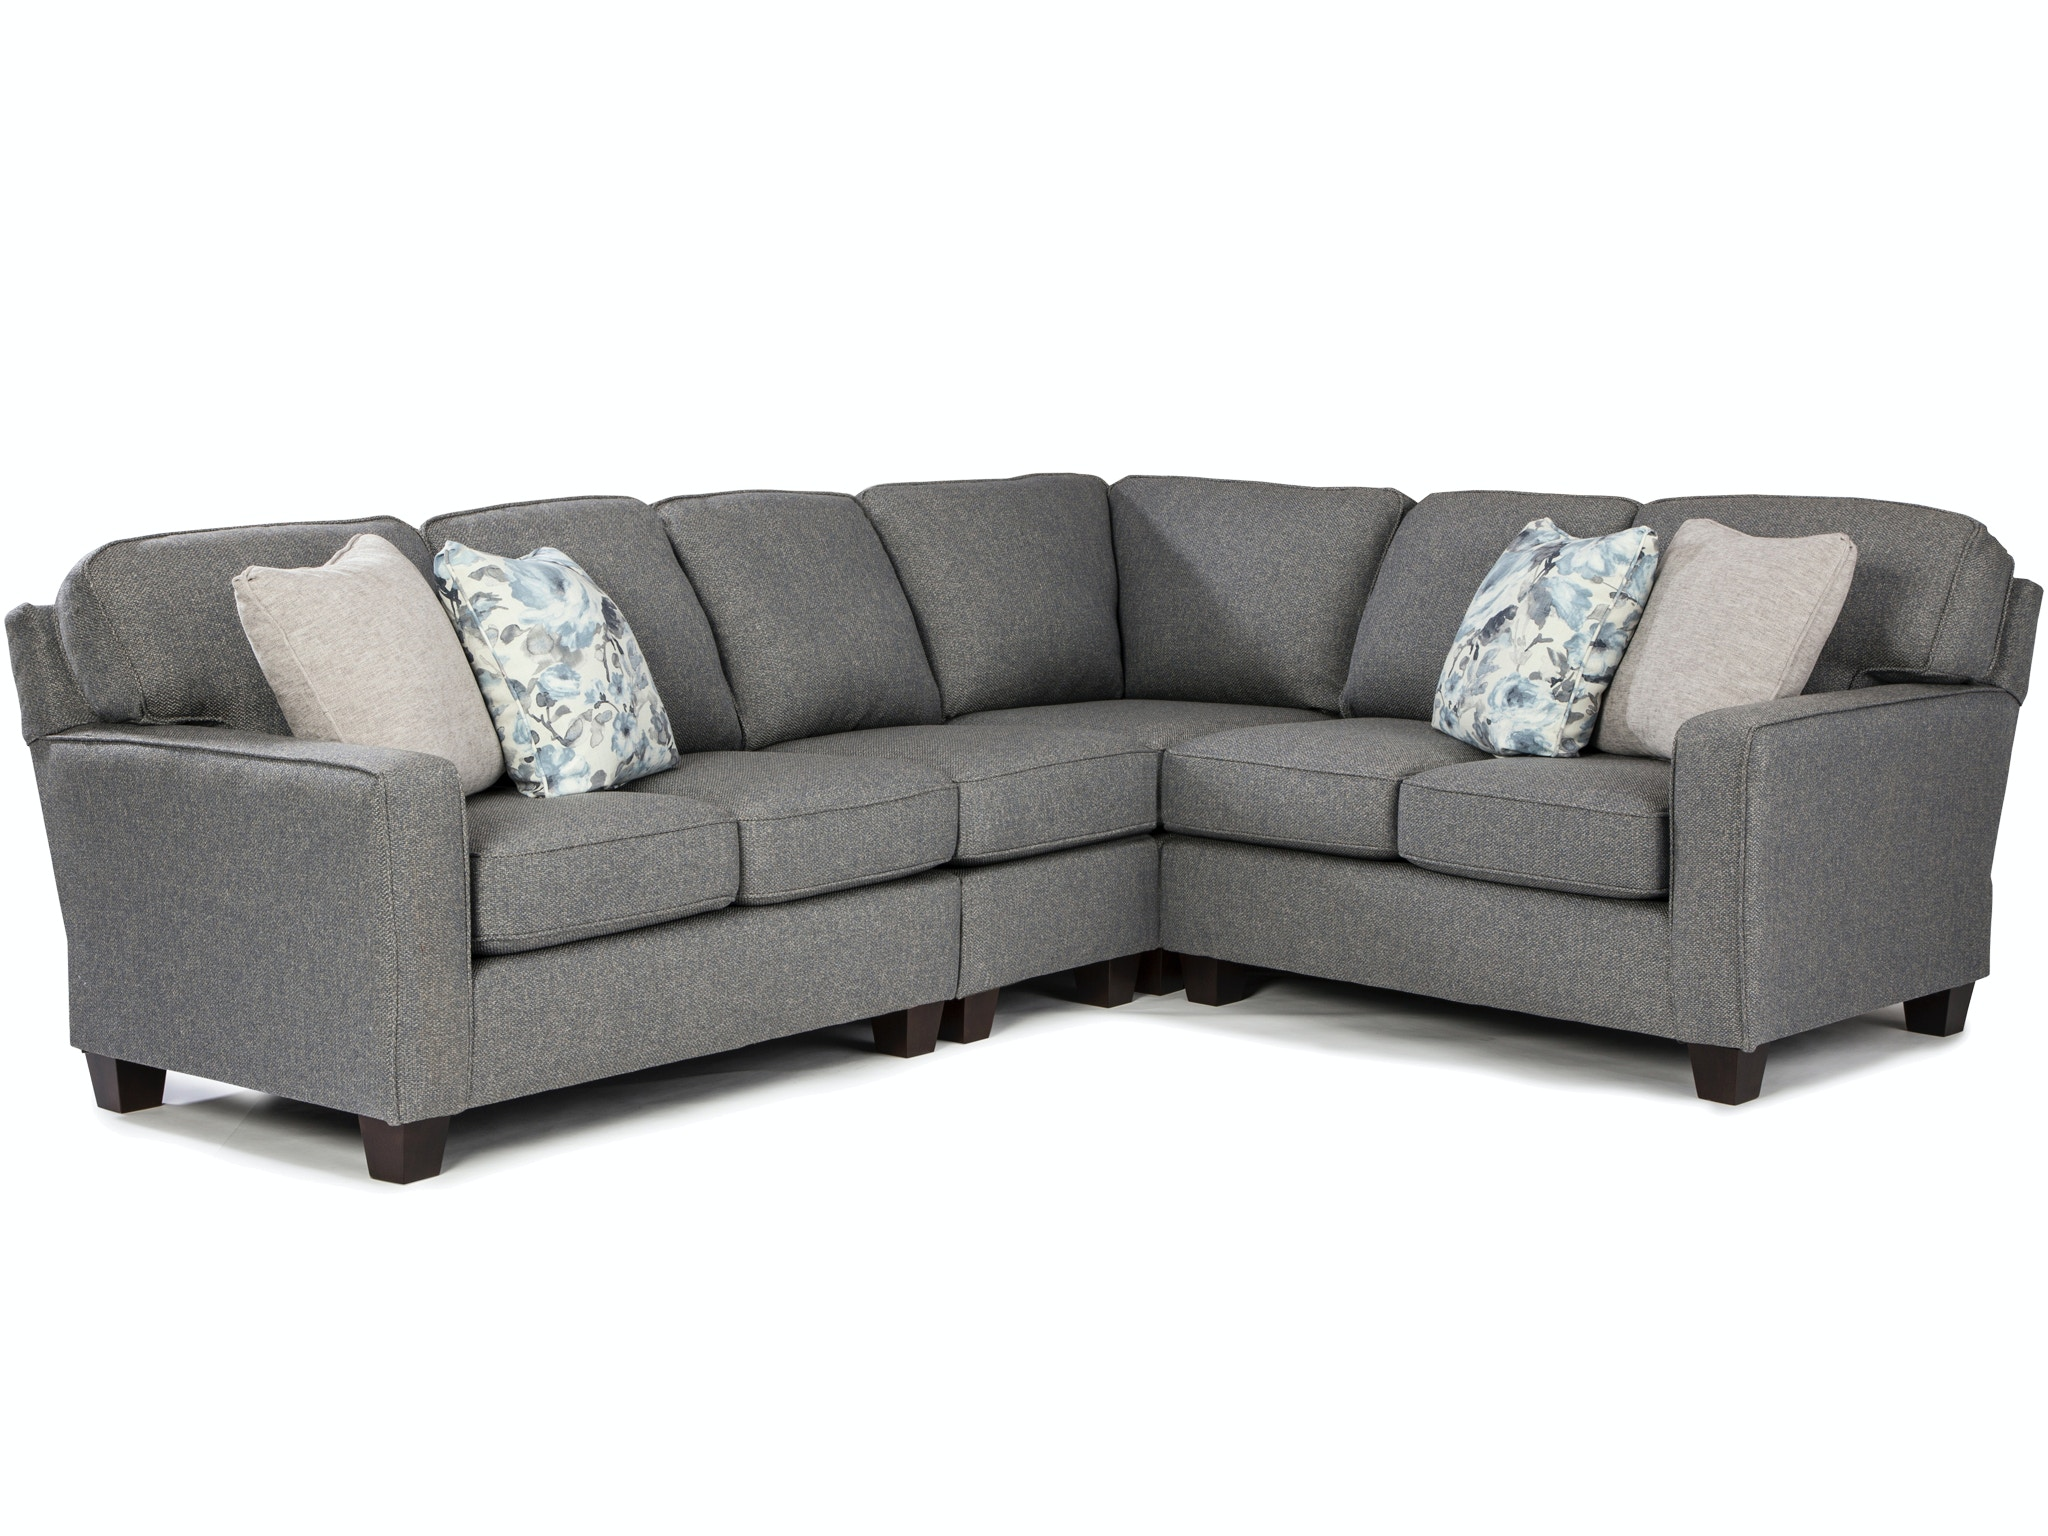 besthf com chairs chair accessories design annabel right arm sectional